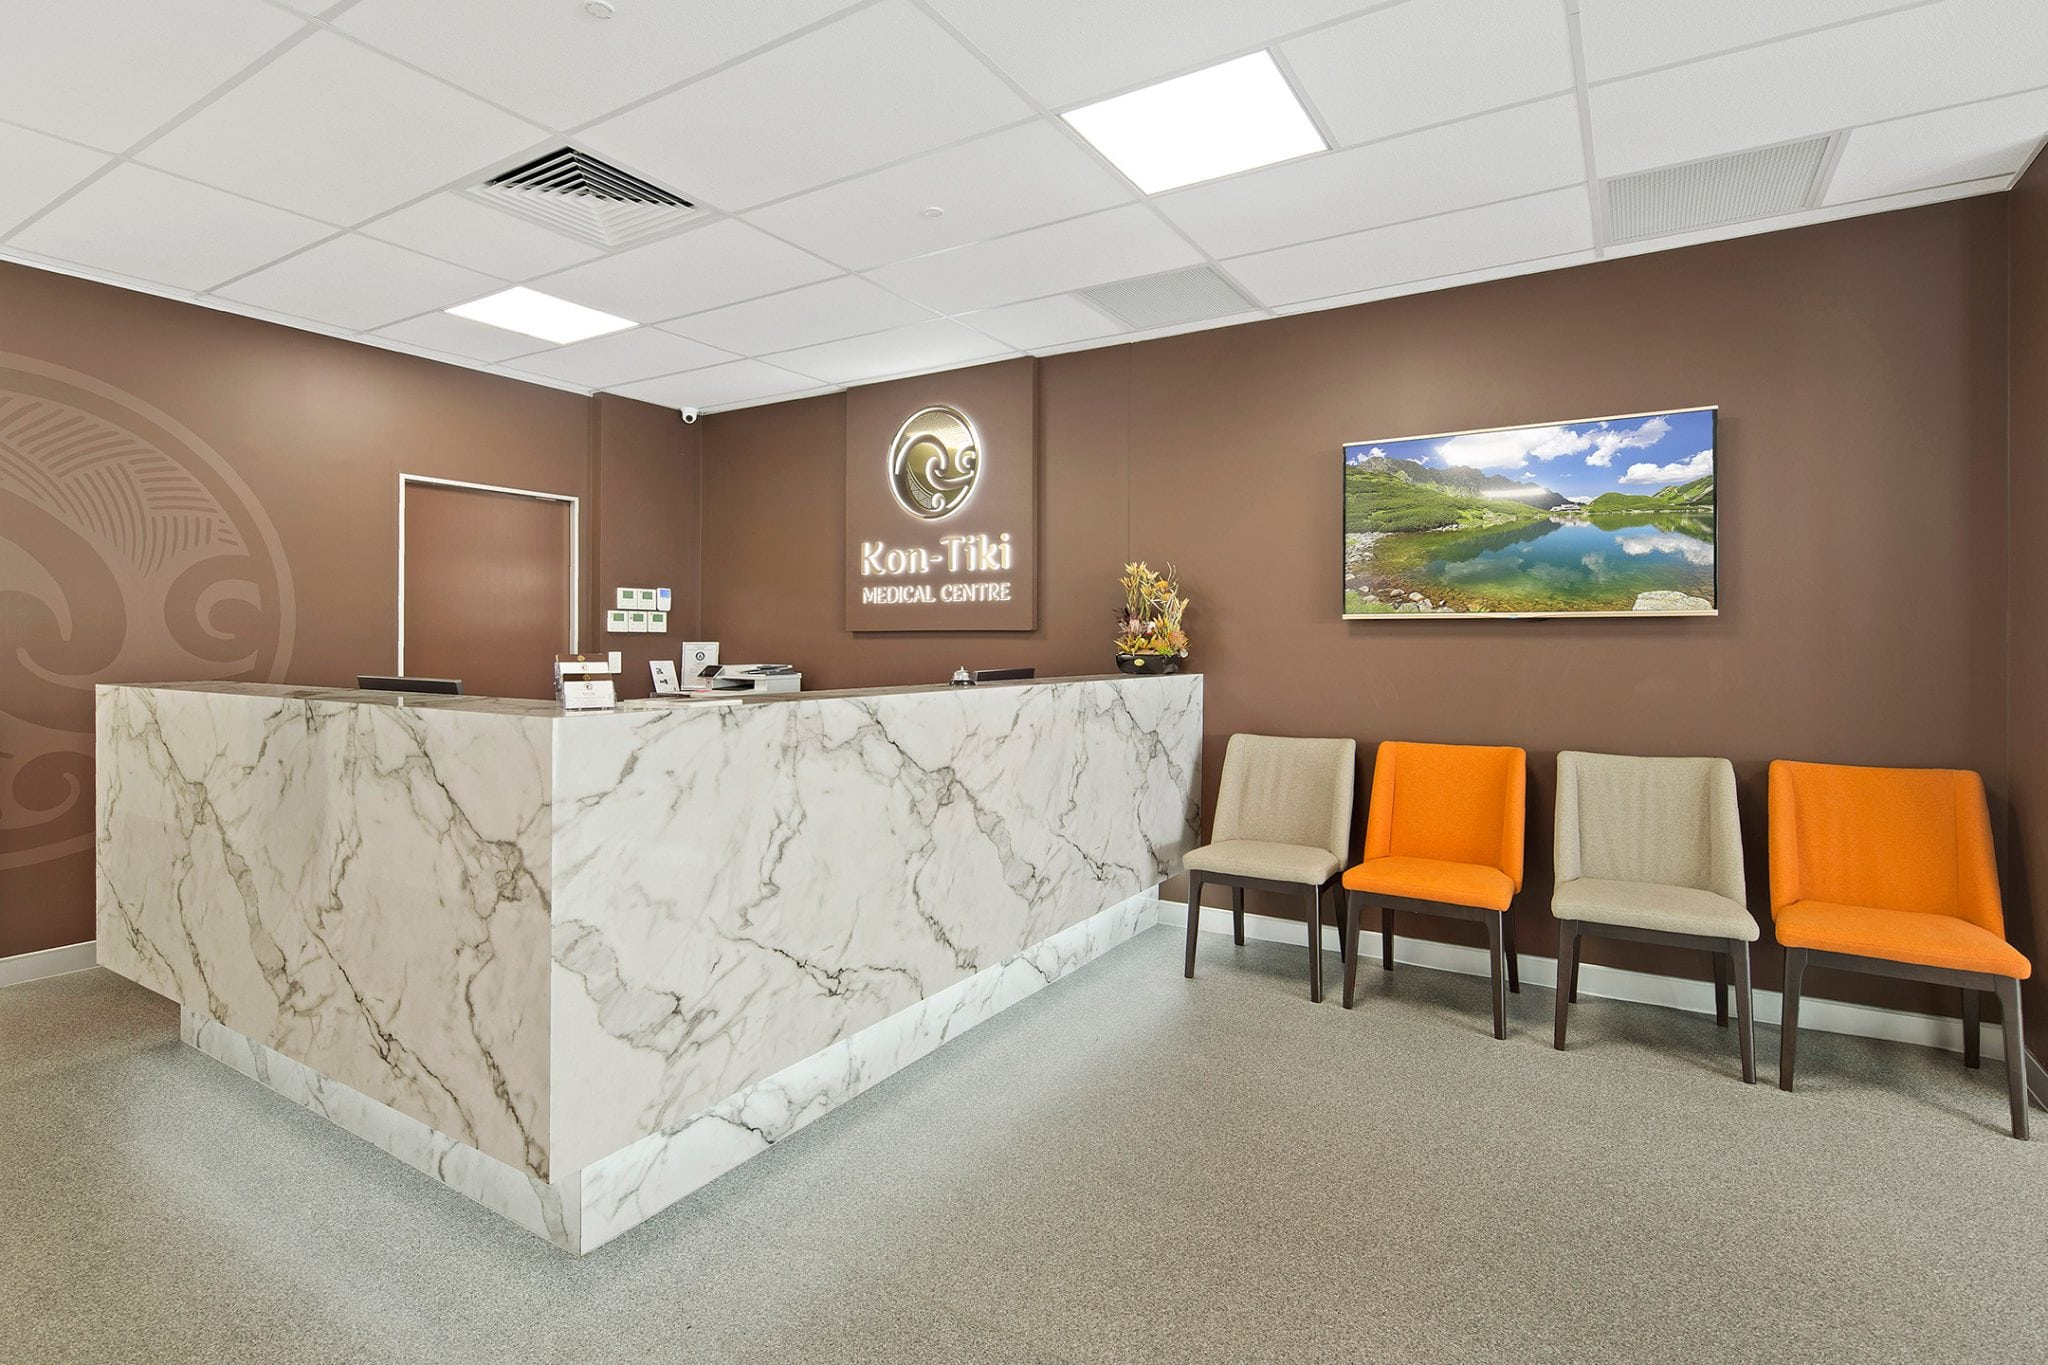 Kontiki Medical Centre Reception Desk And Chairs